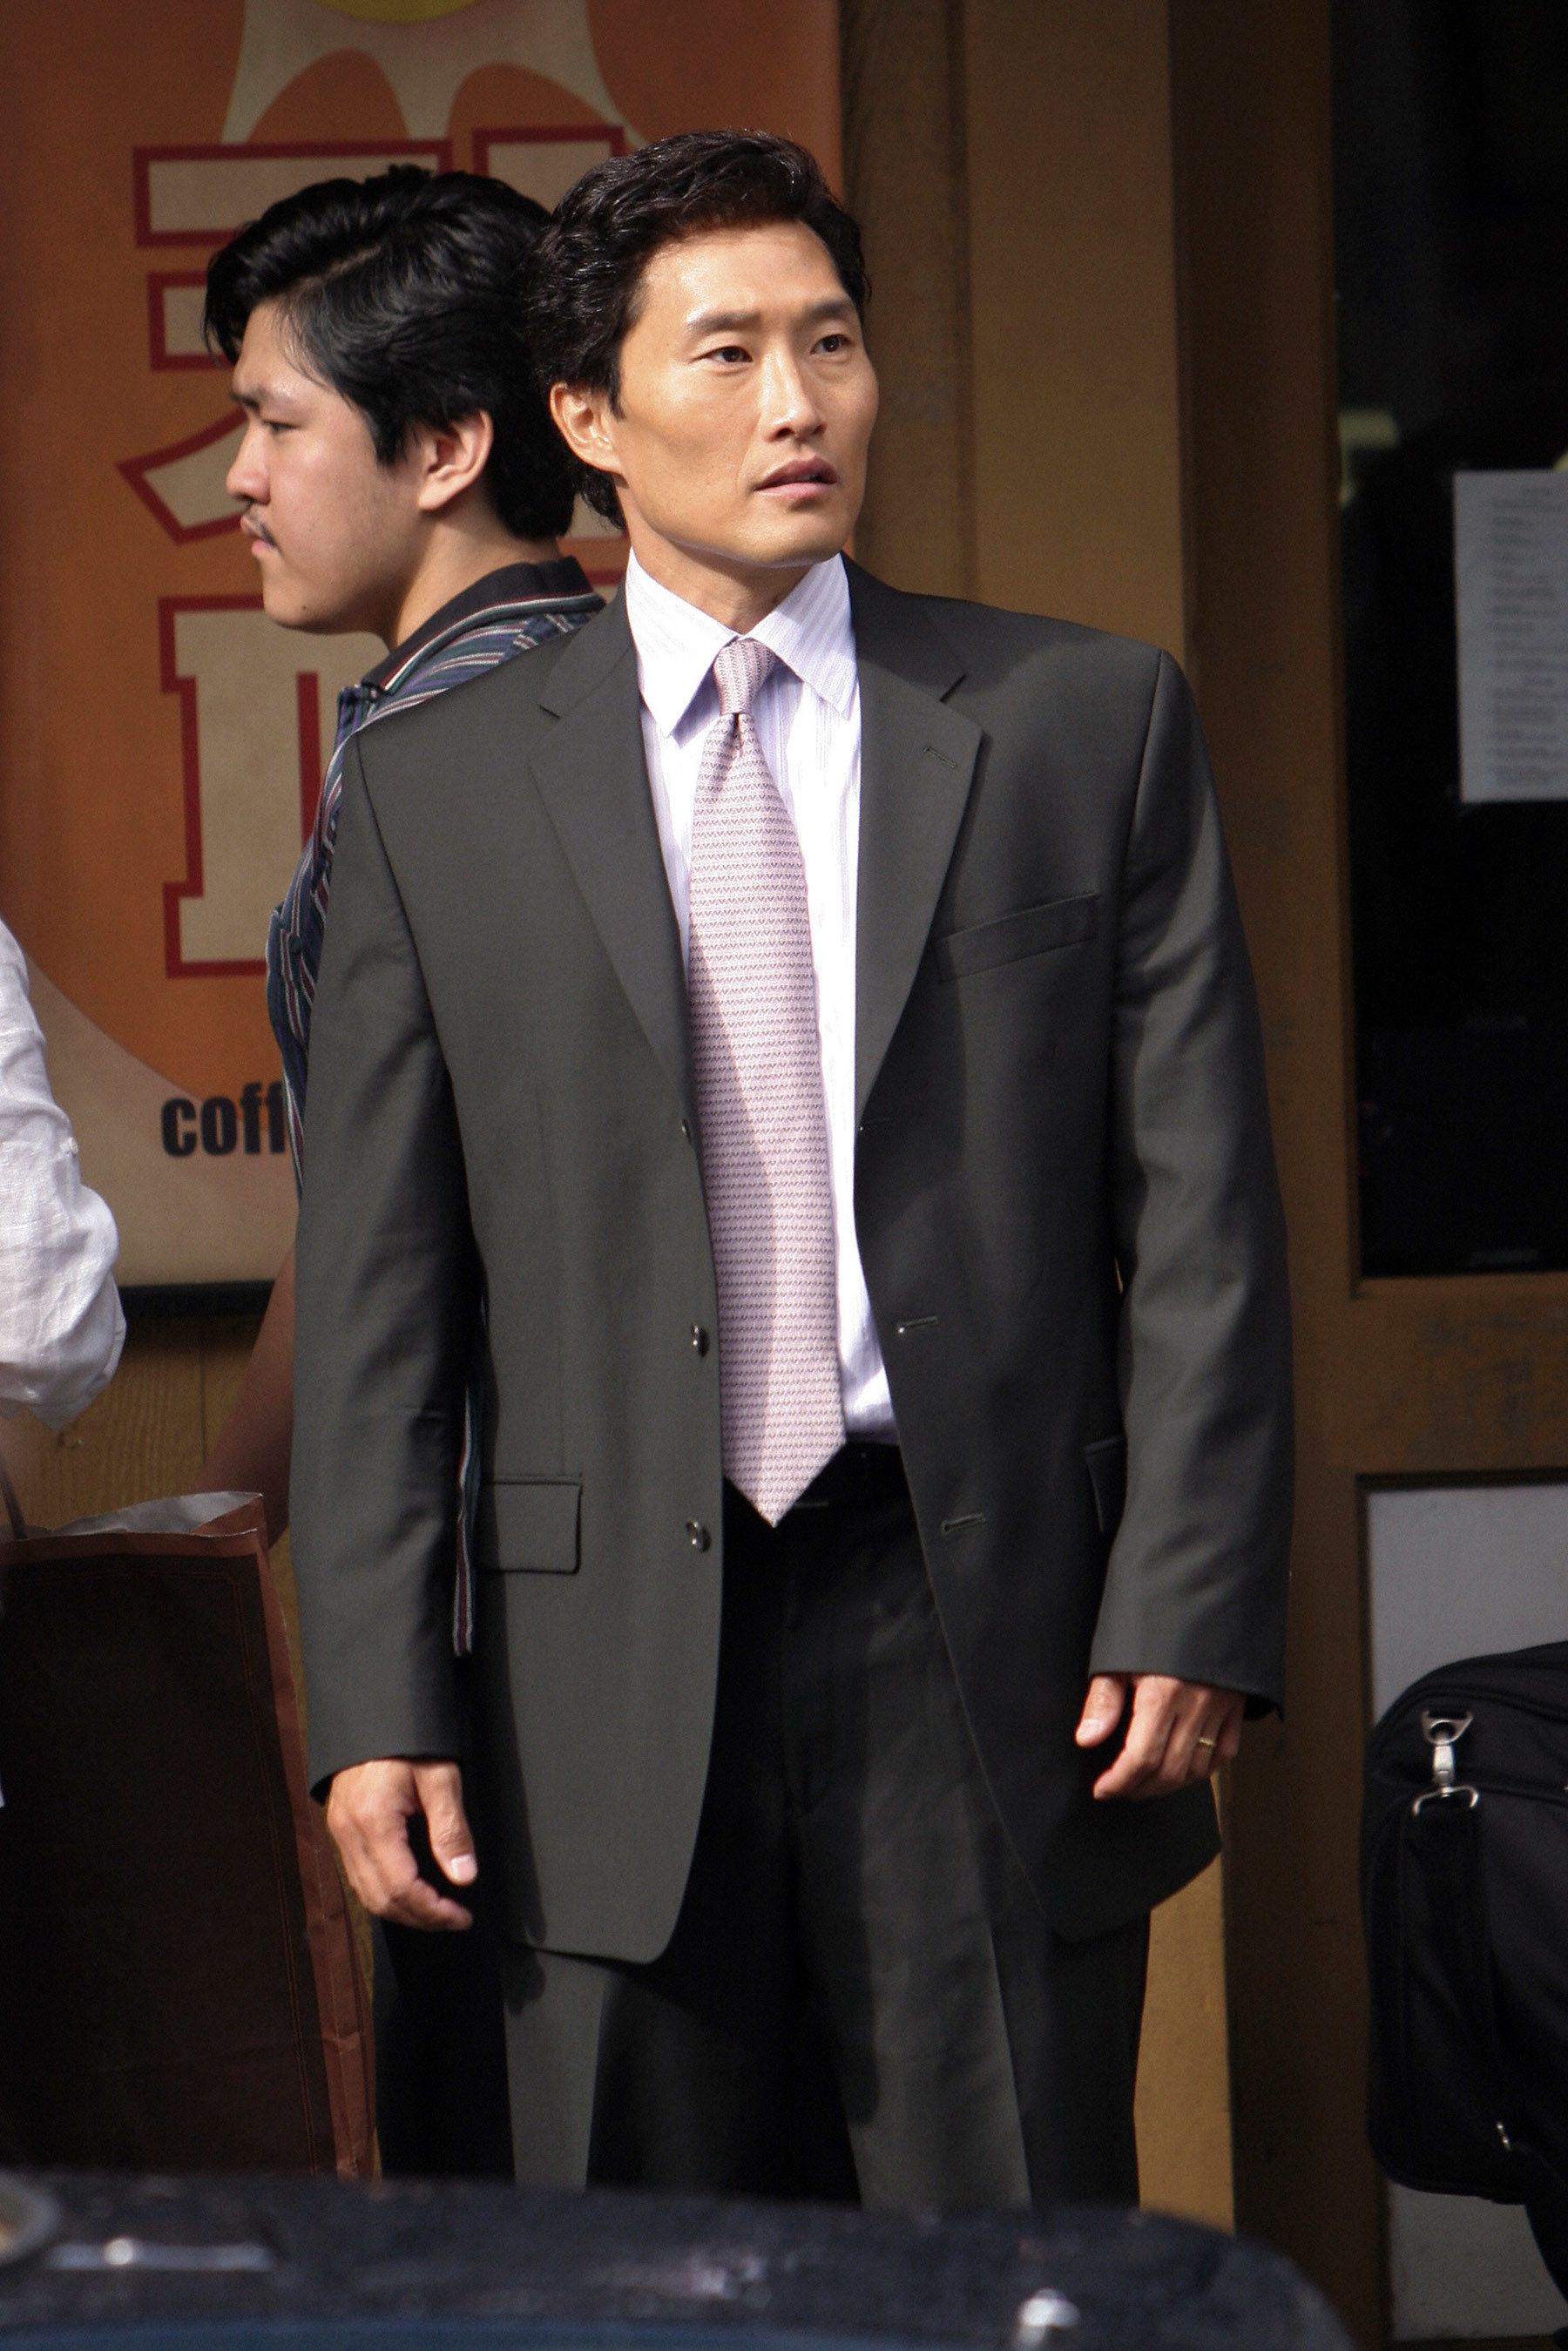 Kim in a suit in the TV show Lost